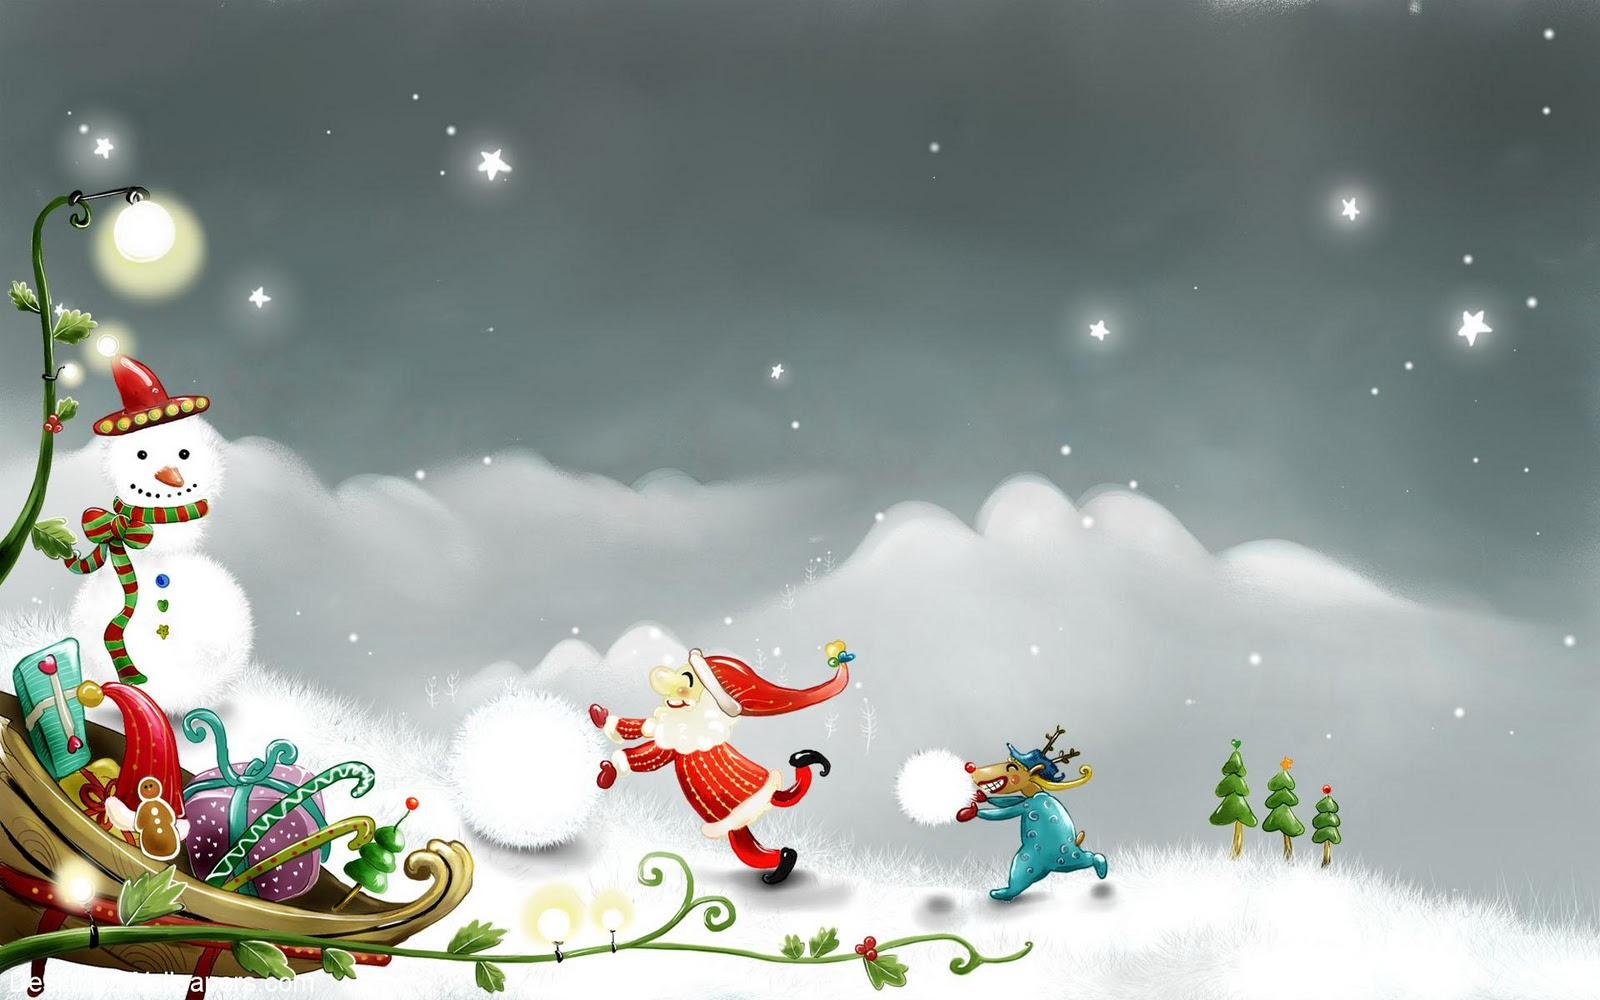 Christmas sms greetings by bhanusrikanth on deviantart christmas sms greetings by bhanusrikanth kristyandbryce Image collections